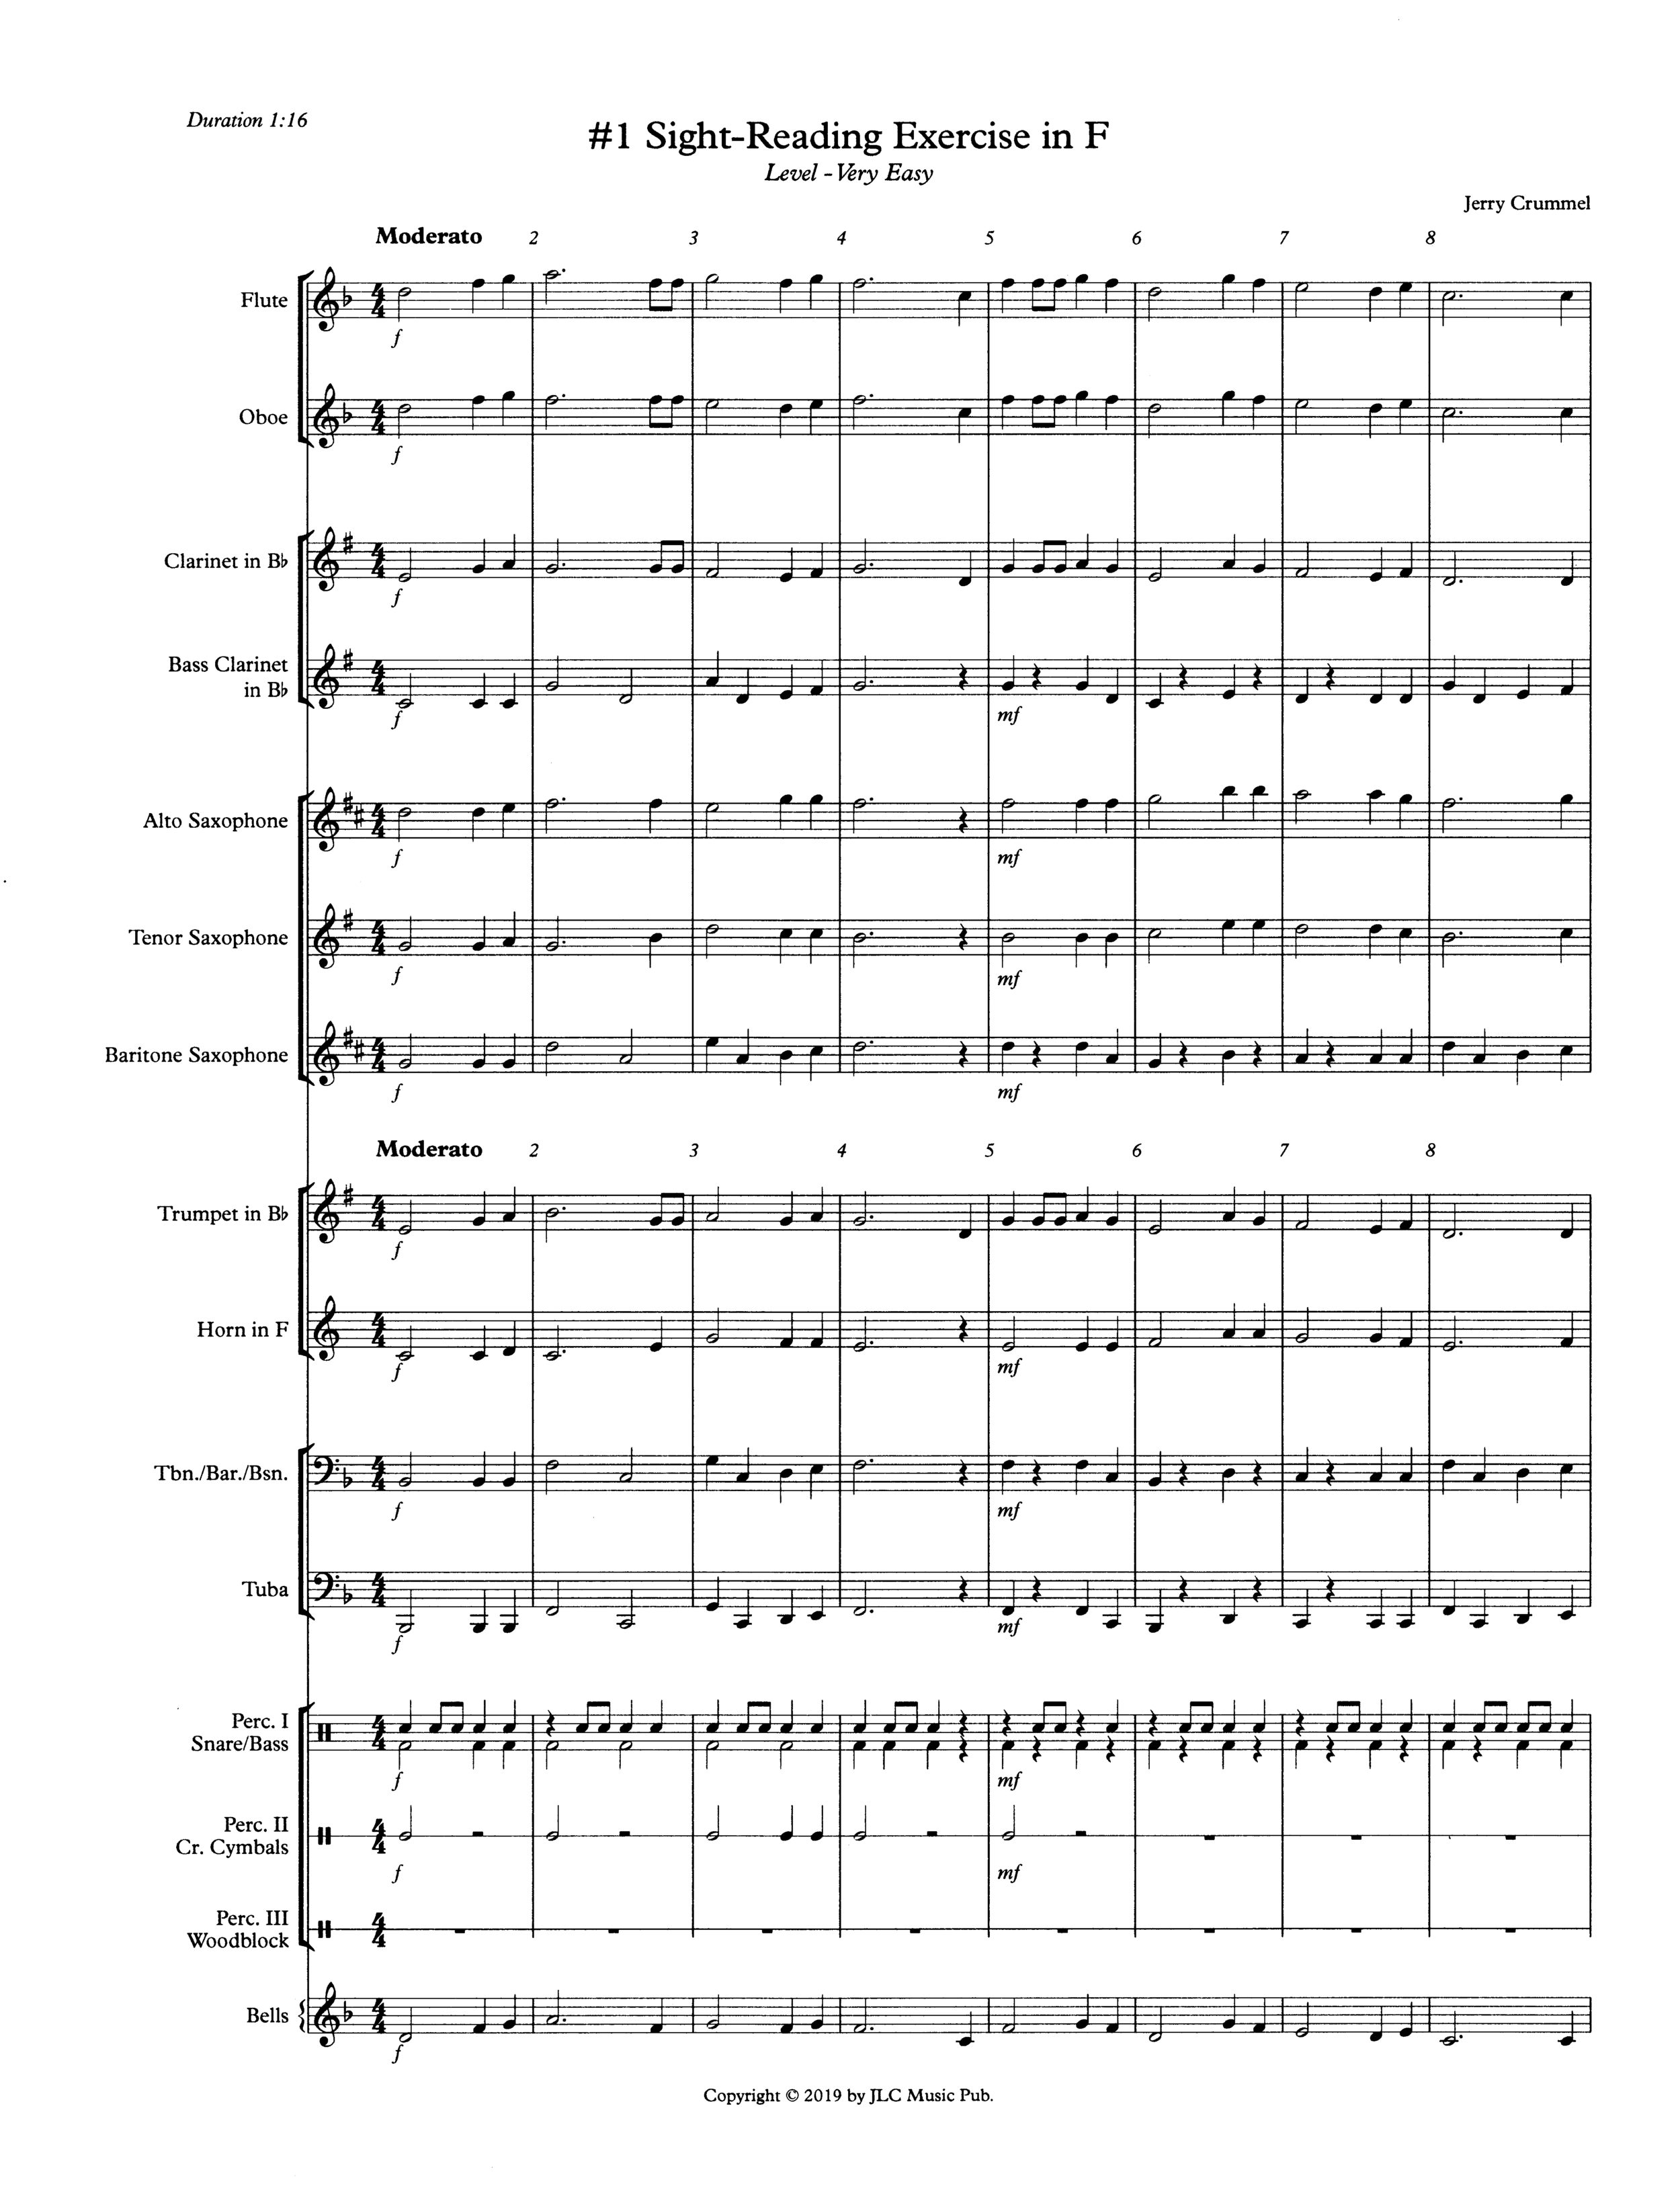 #1 Sight-Reading Exercise in F02122019.png